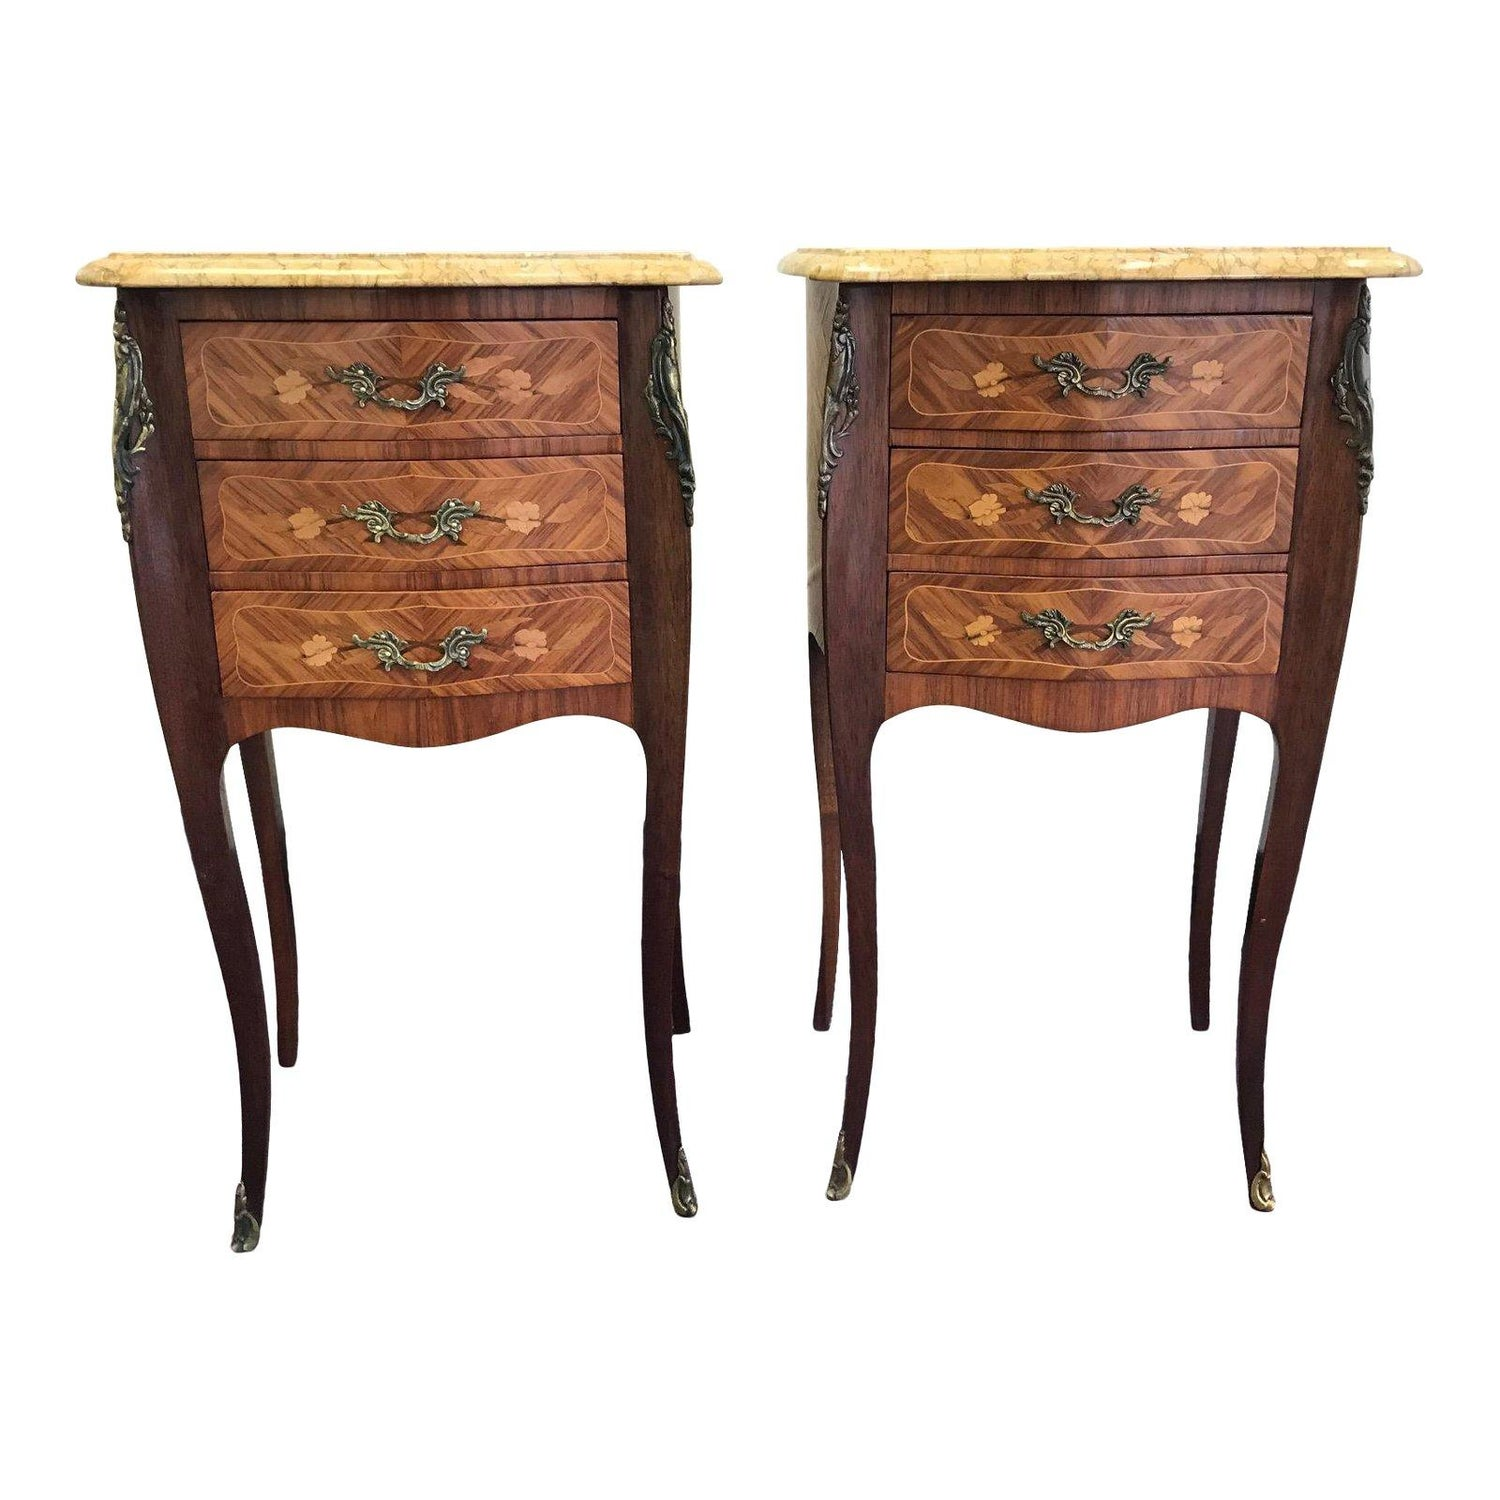 Tables Charming Pair of French Night Stands 1900-20/'s Sku# 9930 Marble Top